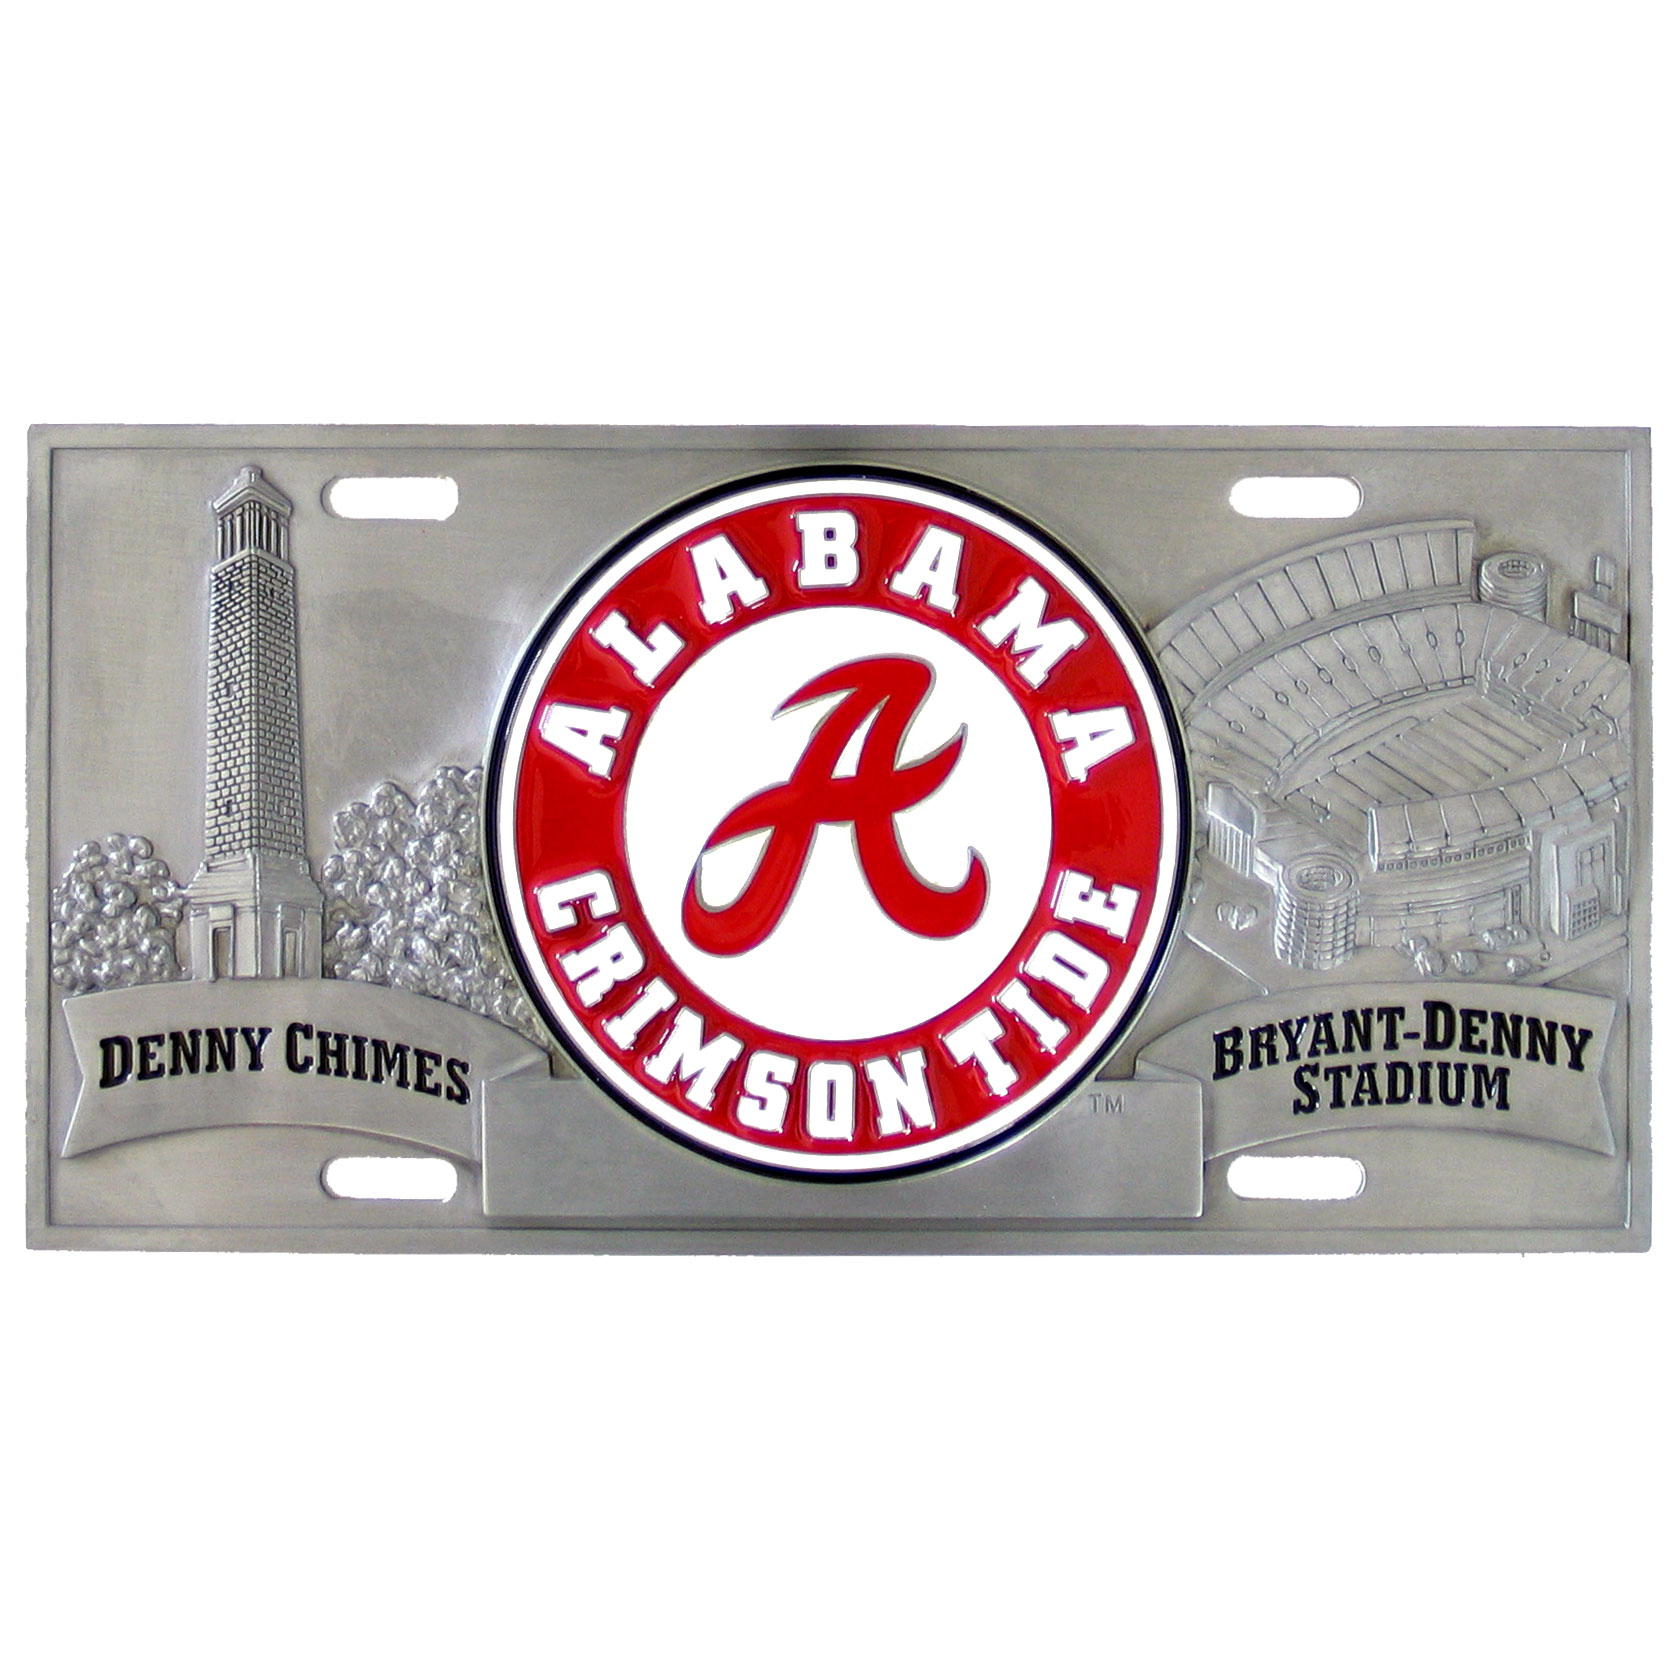 "College License Plate - Alabama Crimson Tide - Alabama Crimson Tide three dimensional license plate. Made for your automobile but also great to display at work or home. 11 3/4"" X 5 13/16"" Thank you for shopping with CrazedOutSports.com"